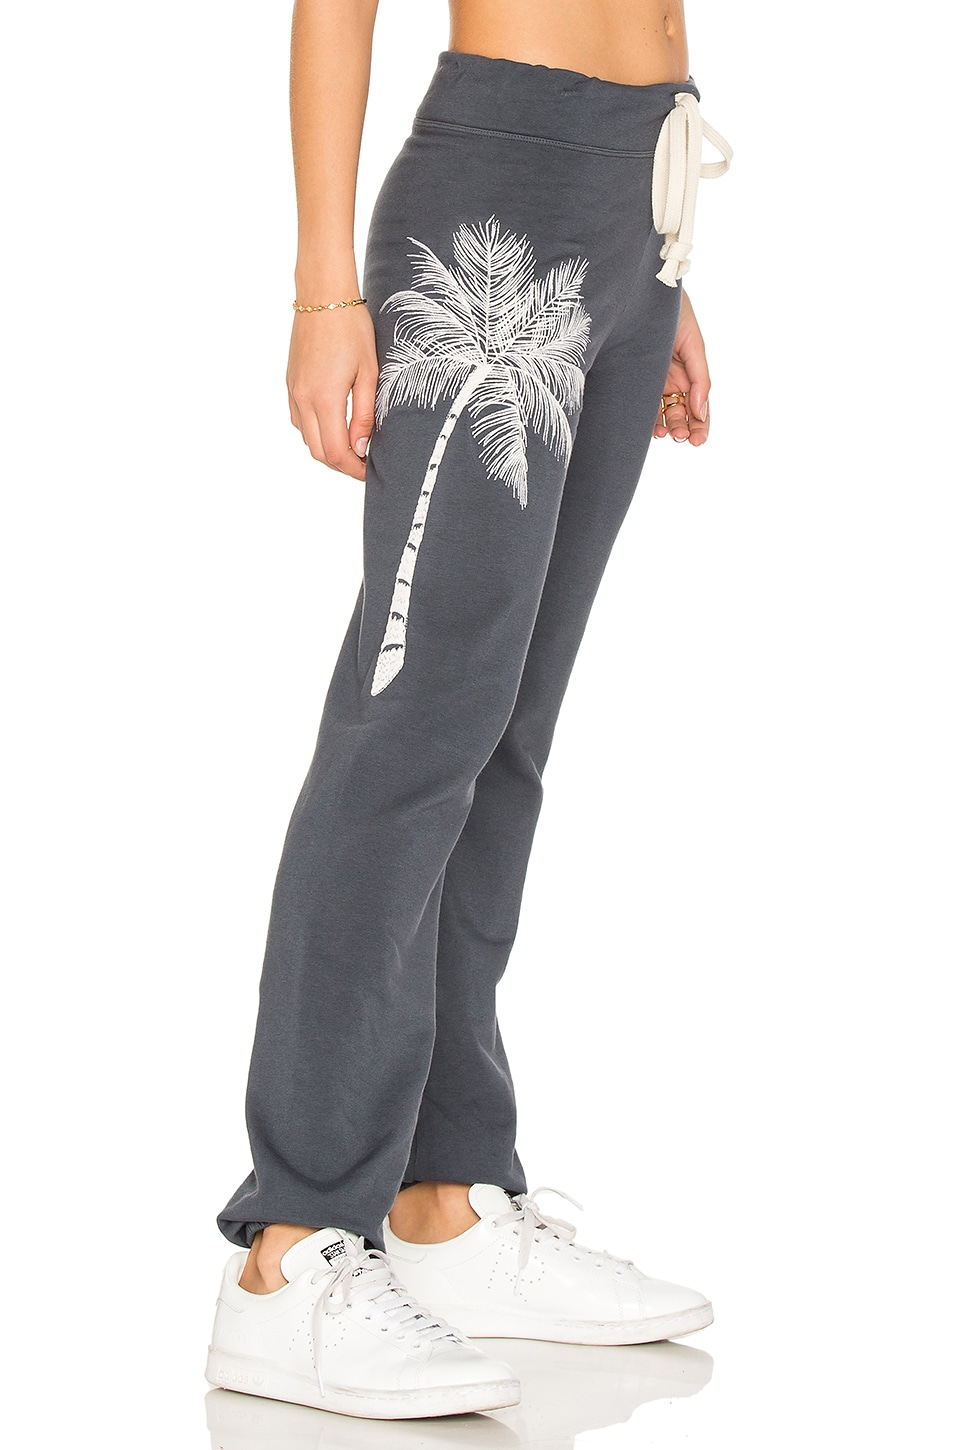 Sandrine Rose Embroidered Sweatpant in Charcoal